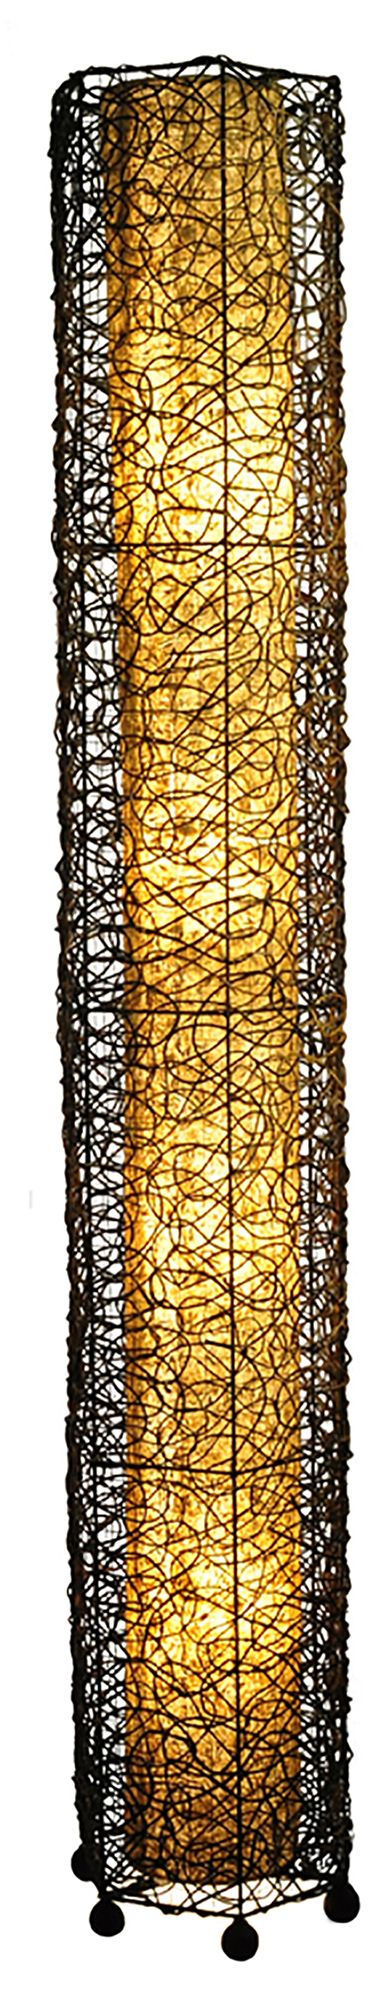 Wonderful Eangee Giant Tower Durian Shade Nito Vines Floor Lamp